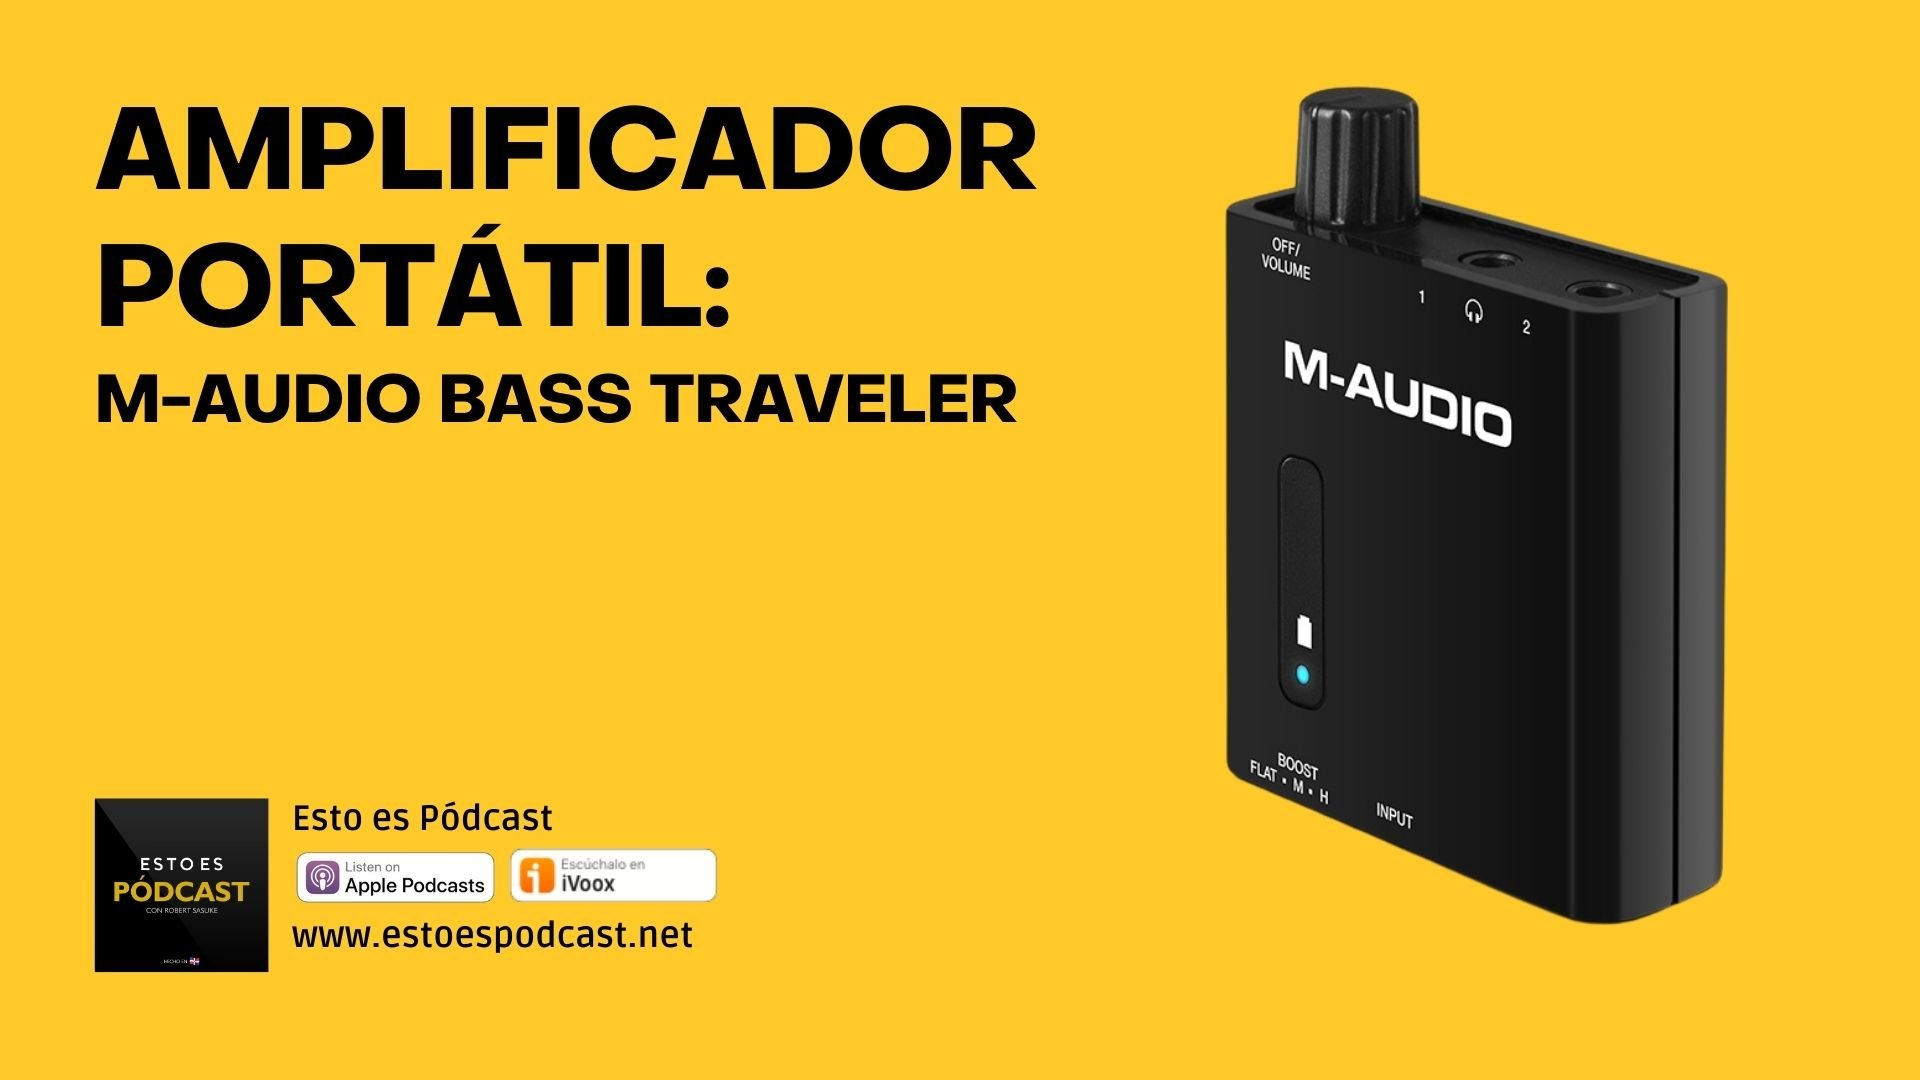 Amplificador para 2 auriculares: M-audio Bass Traveler